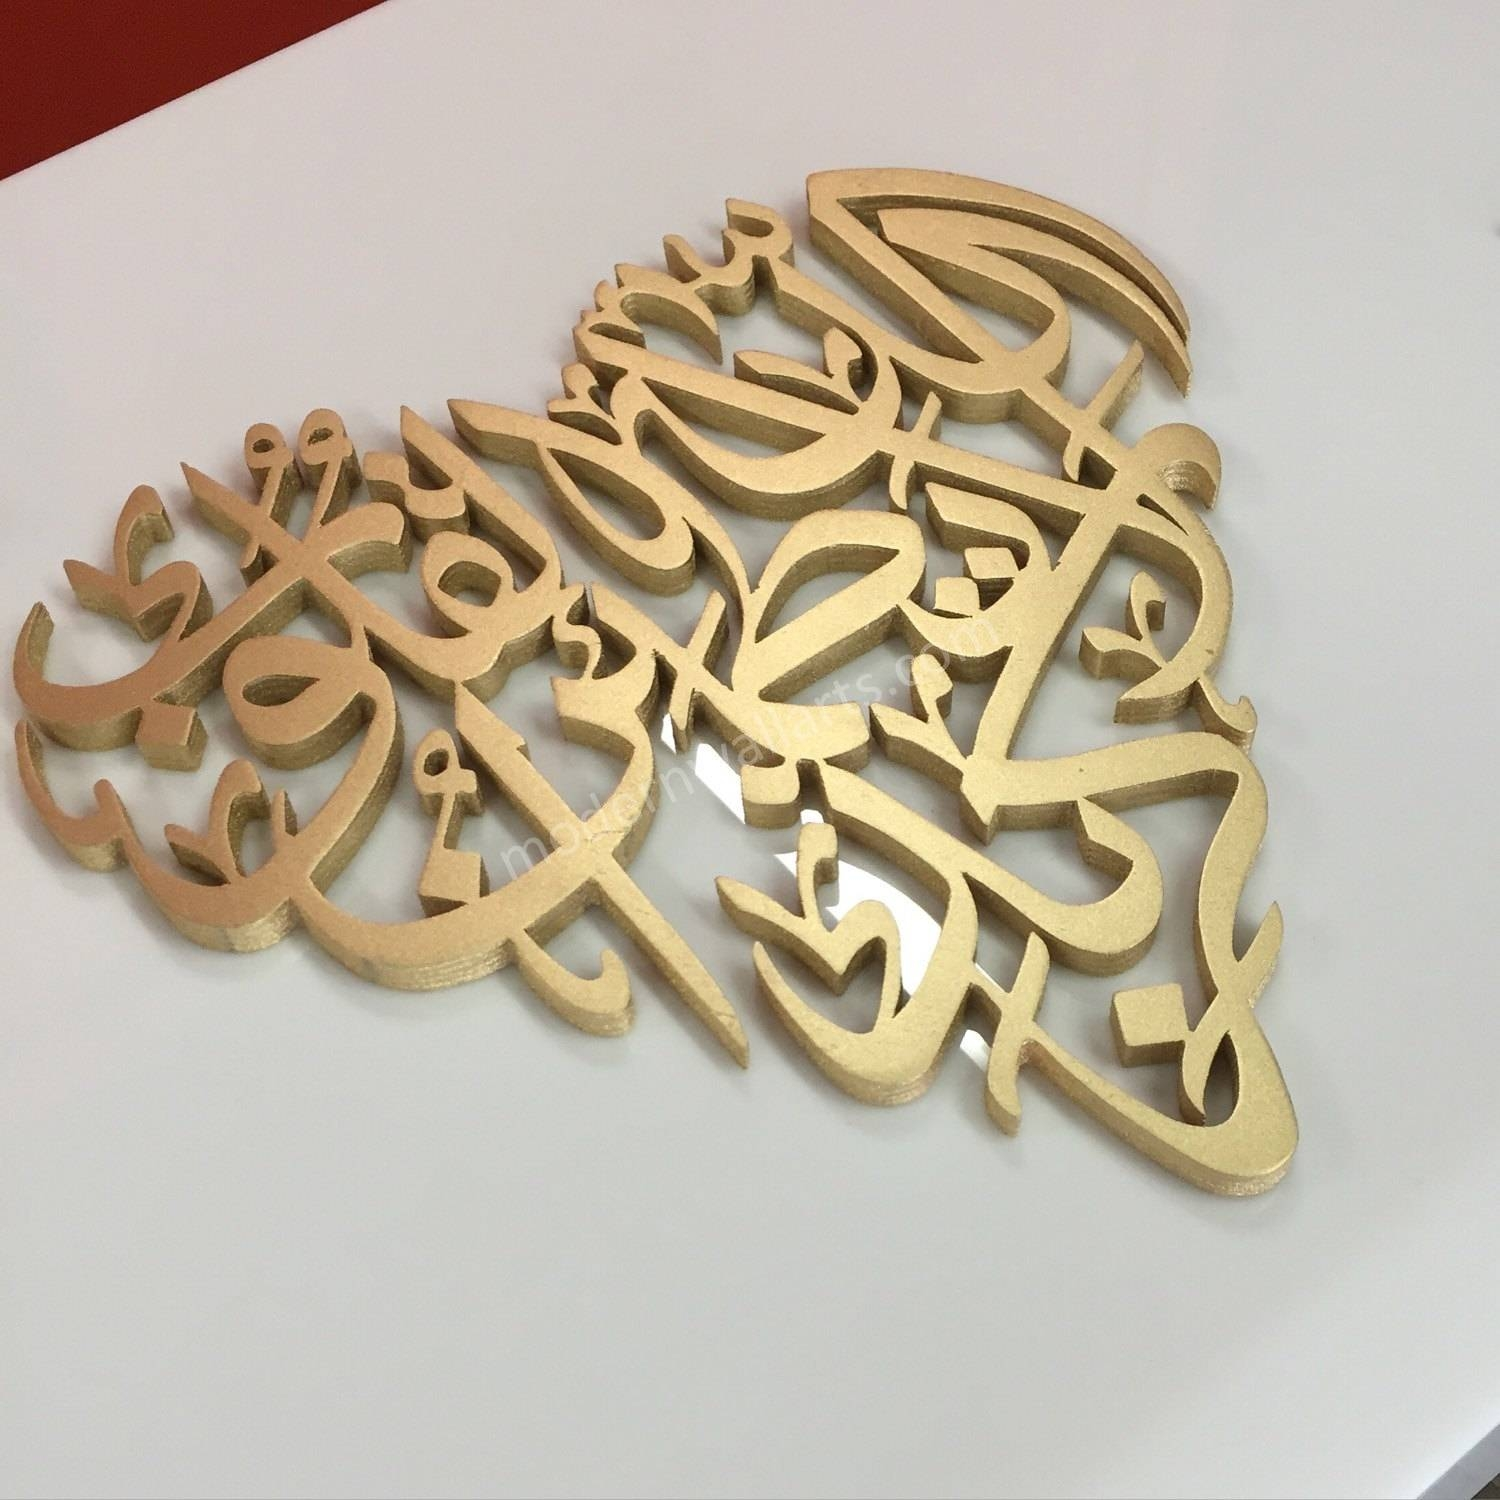 Islamic Heart Shape Table/wall Art – Modern Wall Arts With Most Up To Date Heart Shaped Metal Wall Art (Gallery 9 of 20)